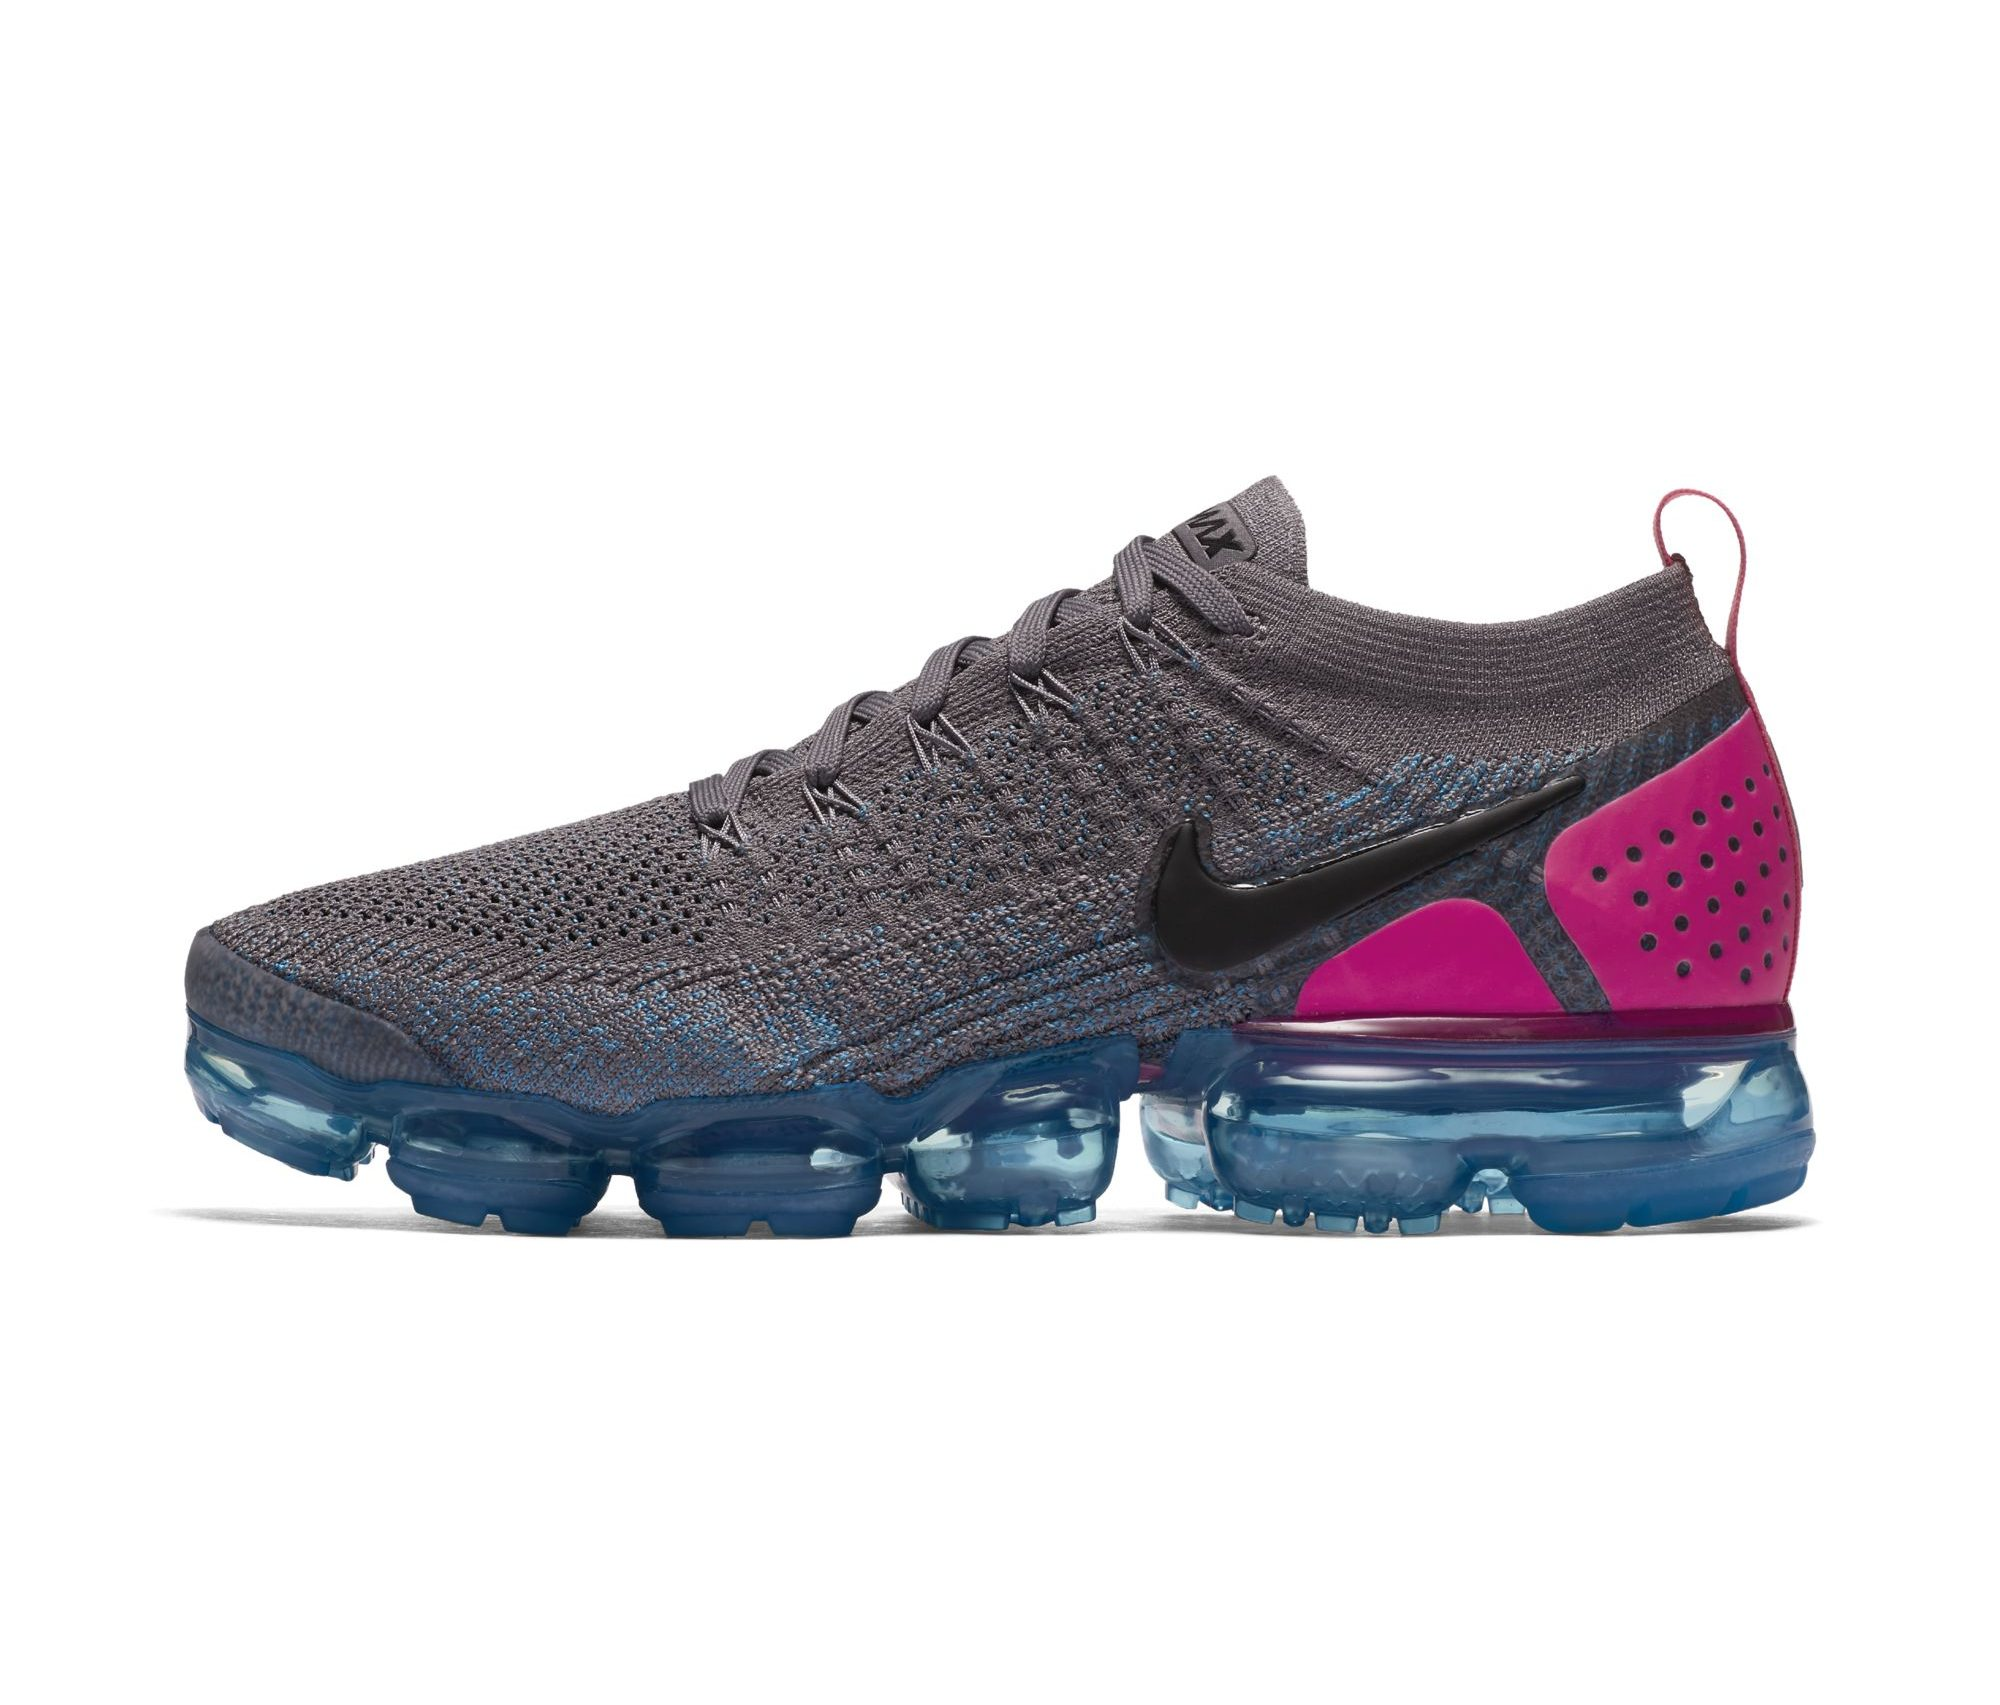 classic fit 05fcd a343a A New Nike Air VaporMax Flyknit 2 is Dropping Next Week ...